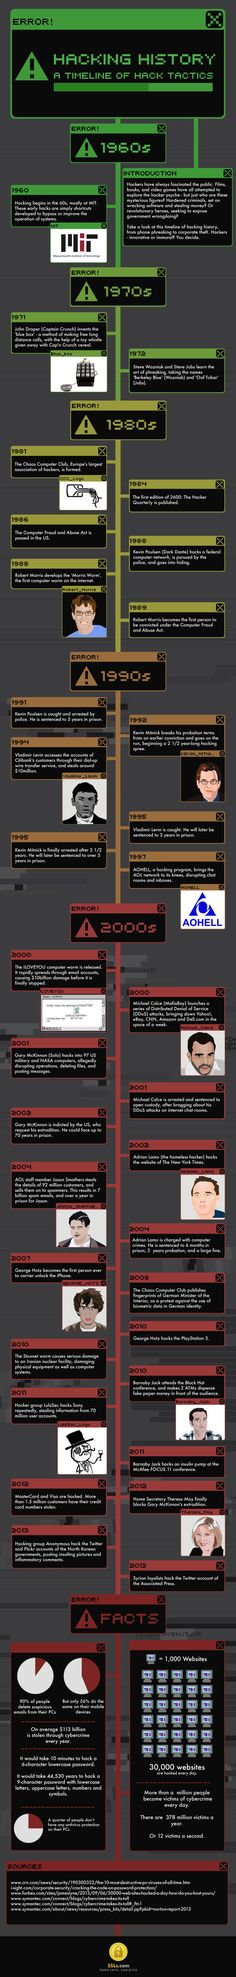 The Hacking History Timeline Infographic